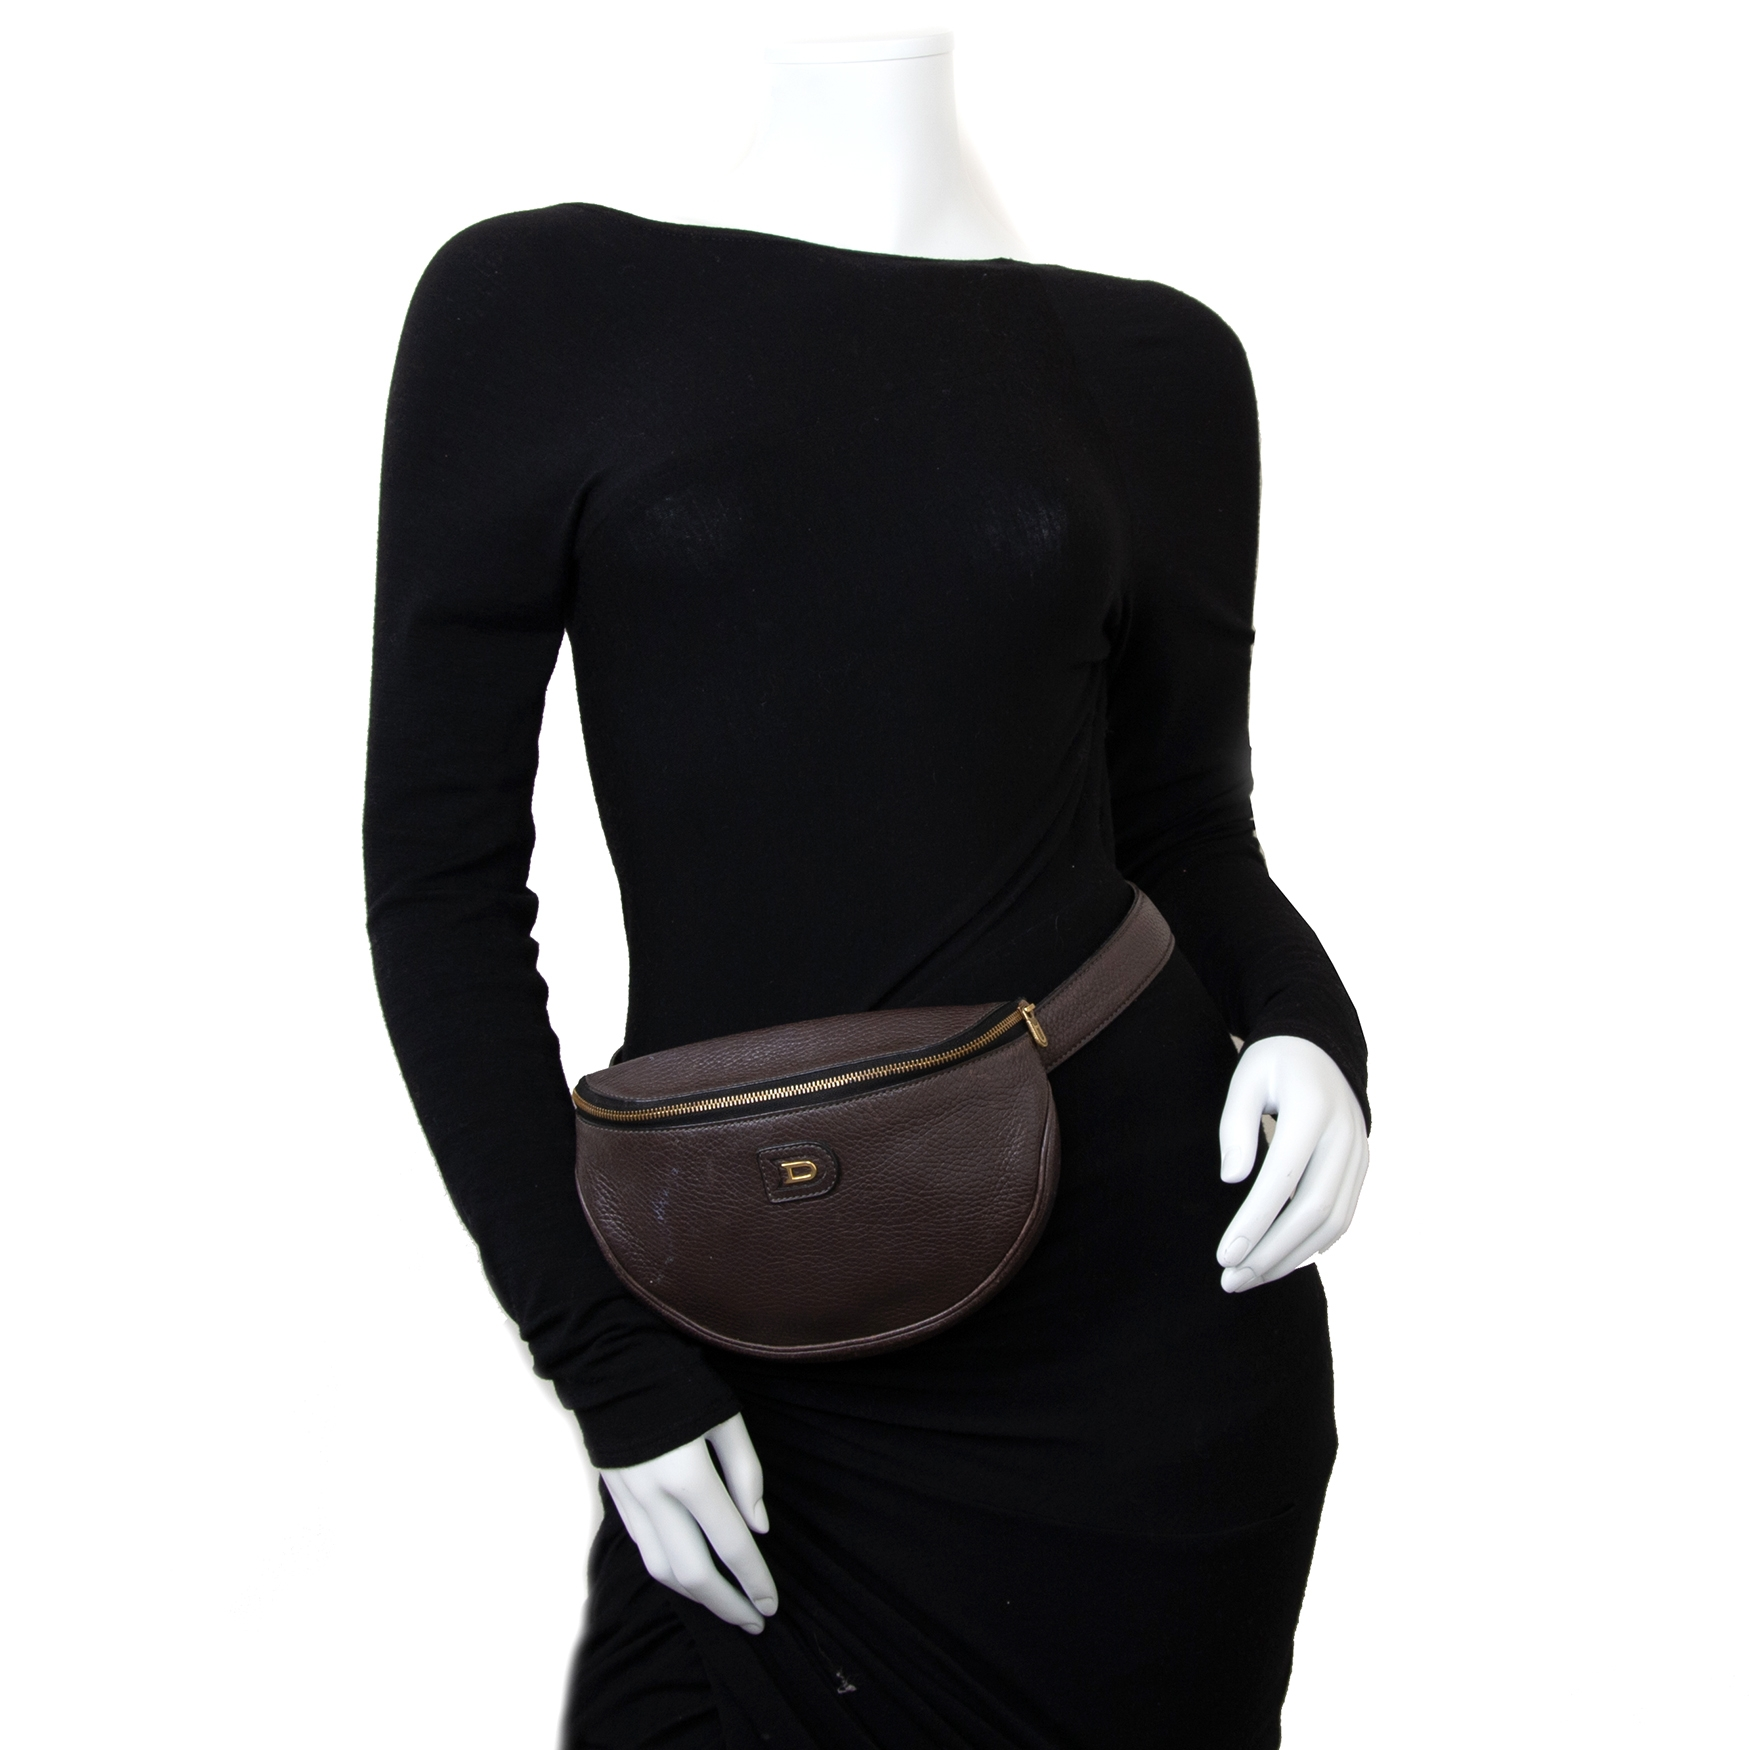 Achetez secur en ligne votre sac a mains Brown Leather Belt Bag chez Labellov à Anvers